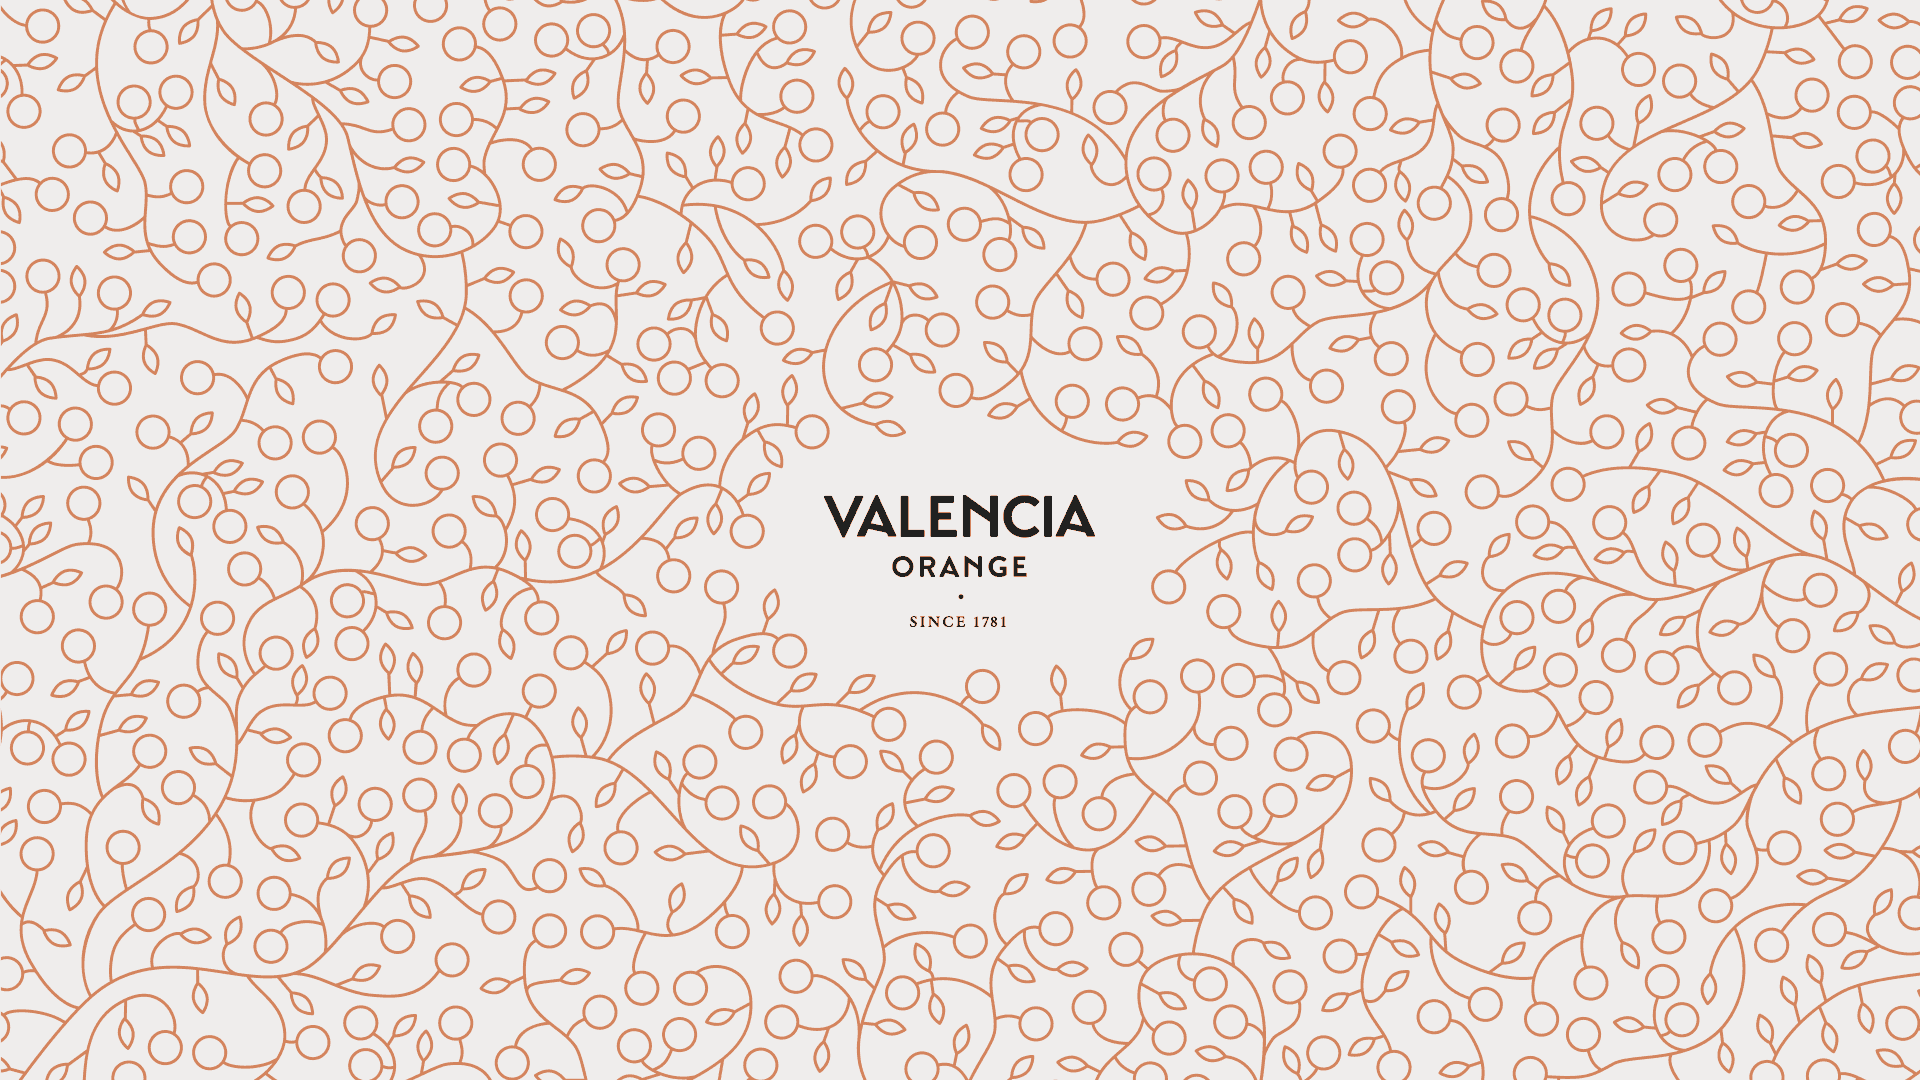 Valencia Orange Since 1781